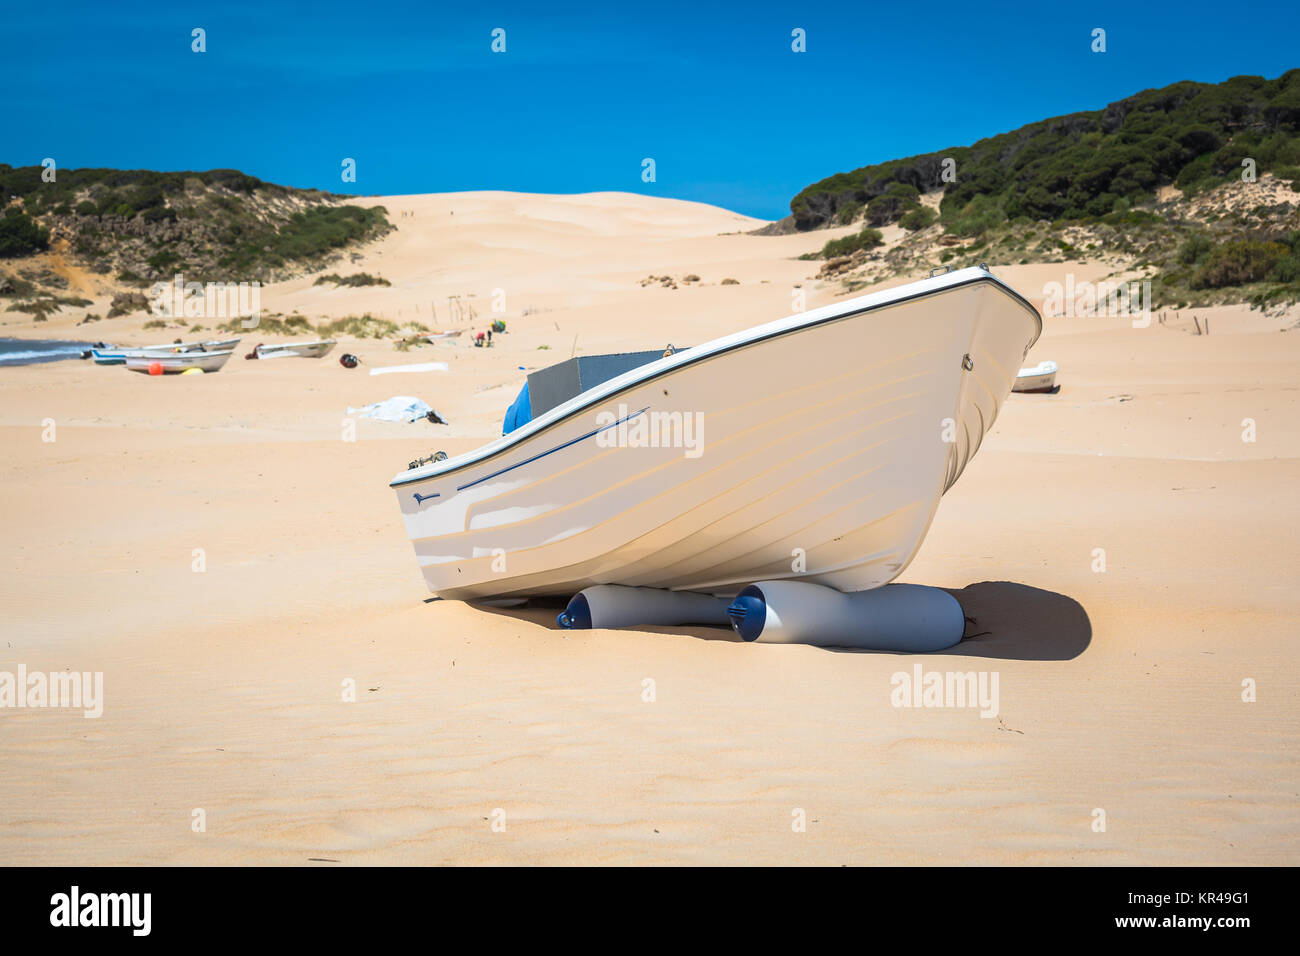 boat at bolonia beach a coastal village in the municipality of Tarifa in the Province of Cadiz in southern Spain. Stock Photo